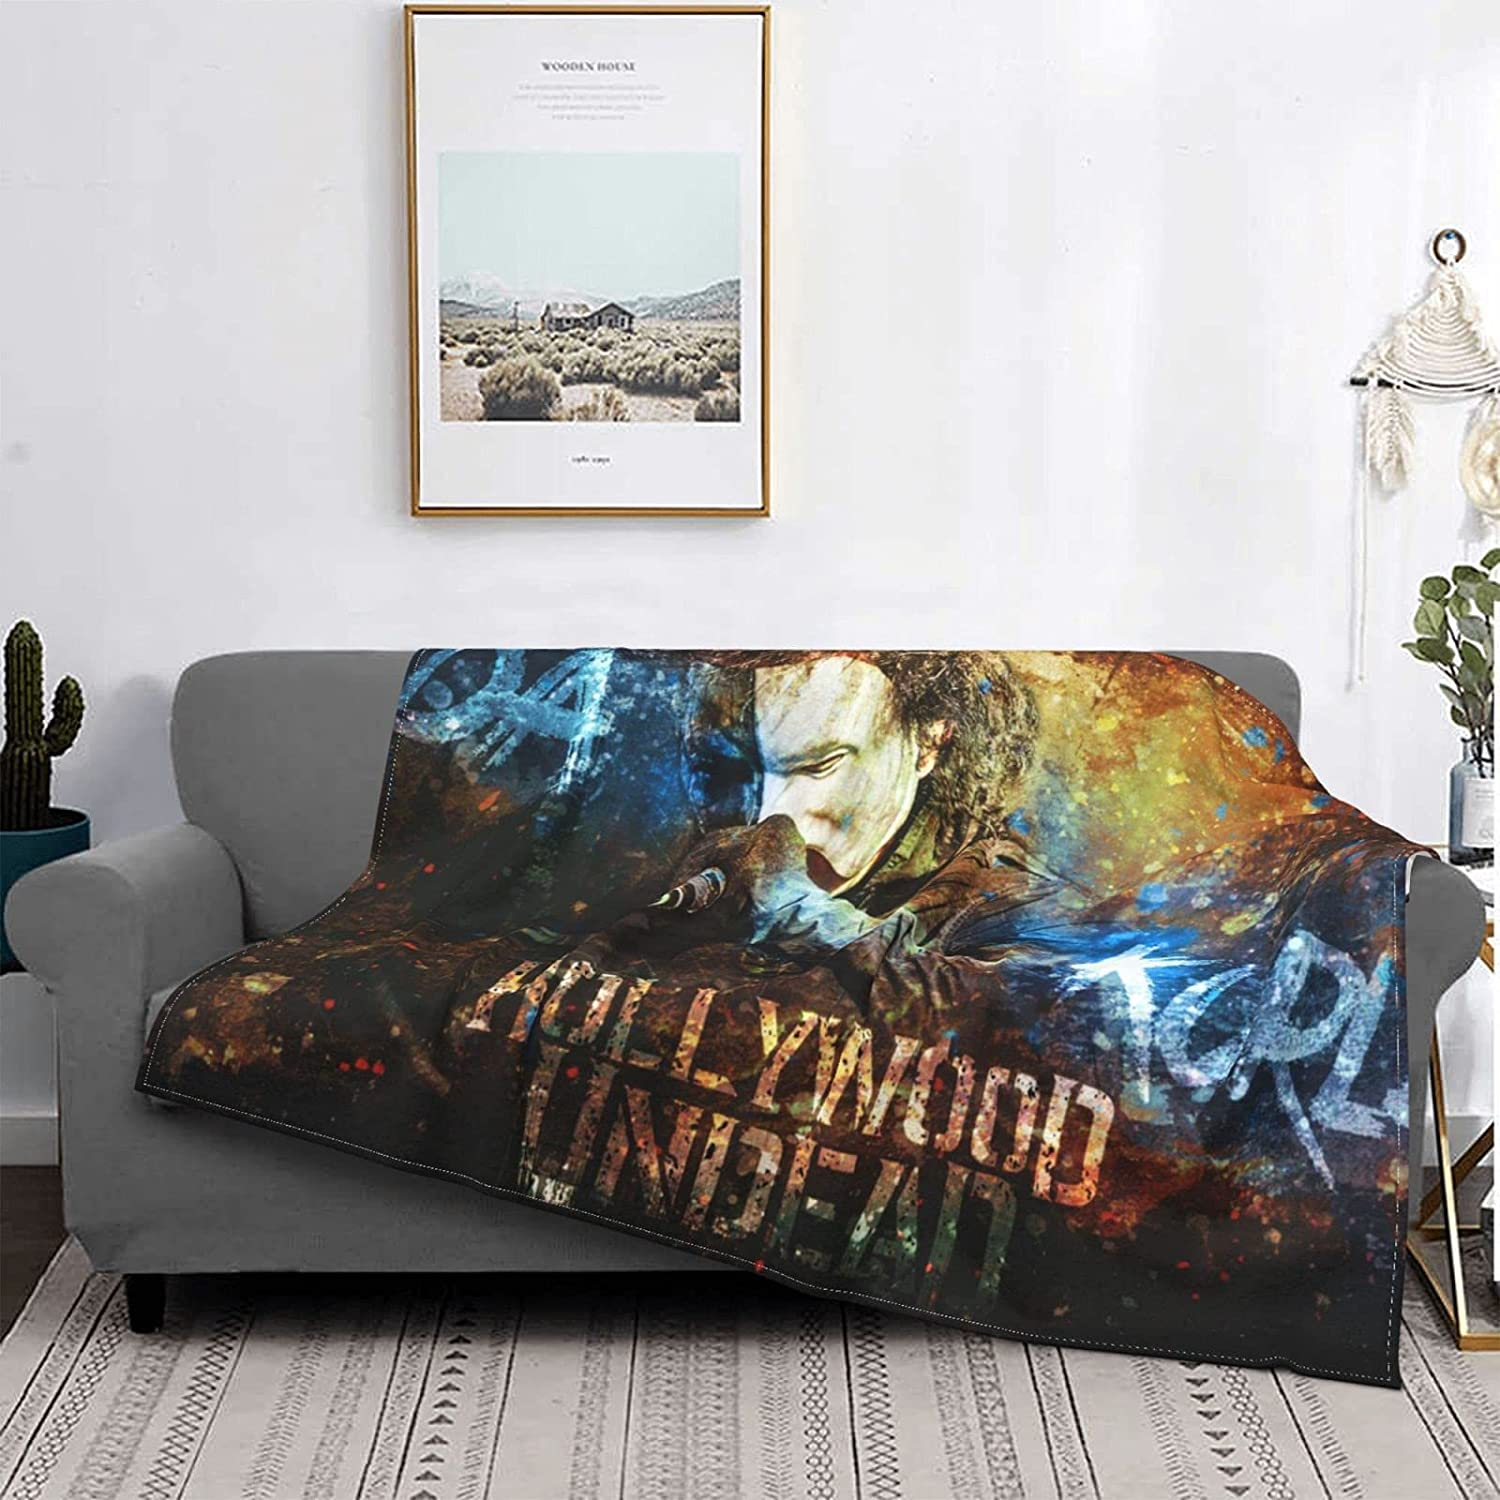 Hollywood Undead Fleece Blanket Some reservation Lightweight Blan Super Cozy Inexpensive Soft